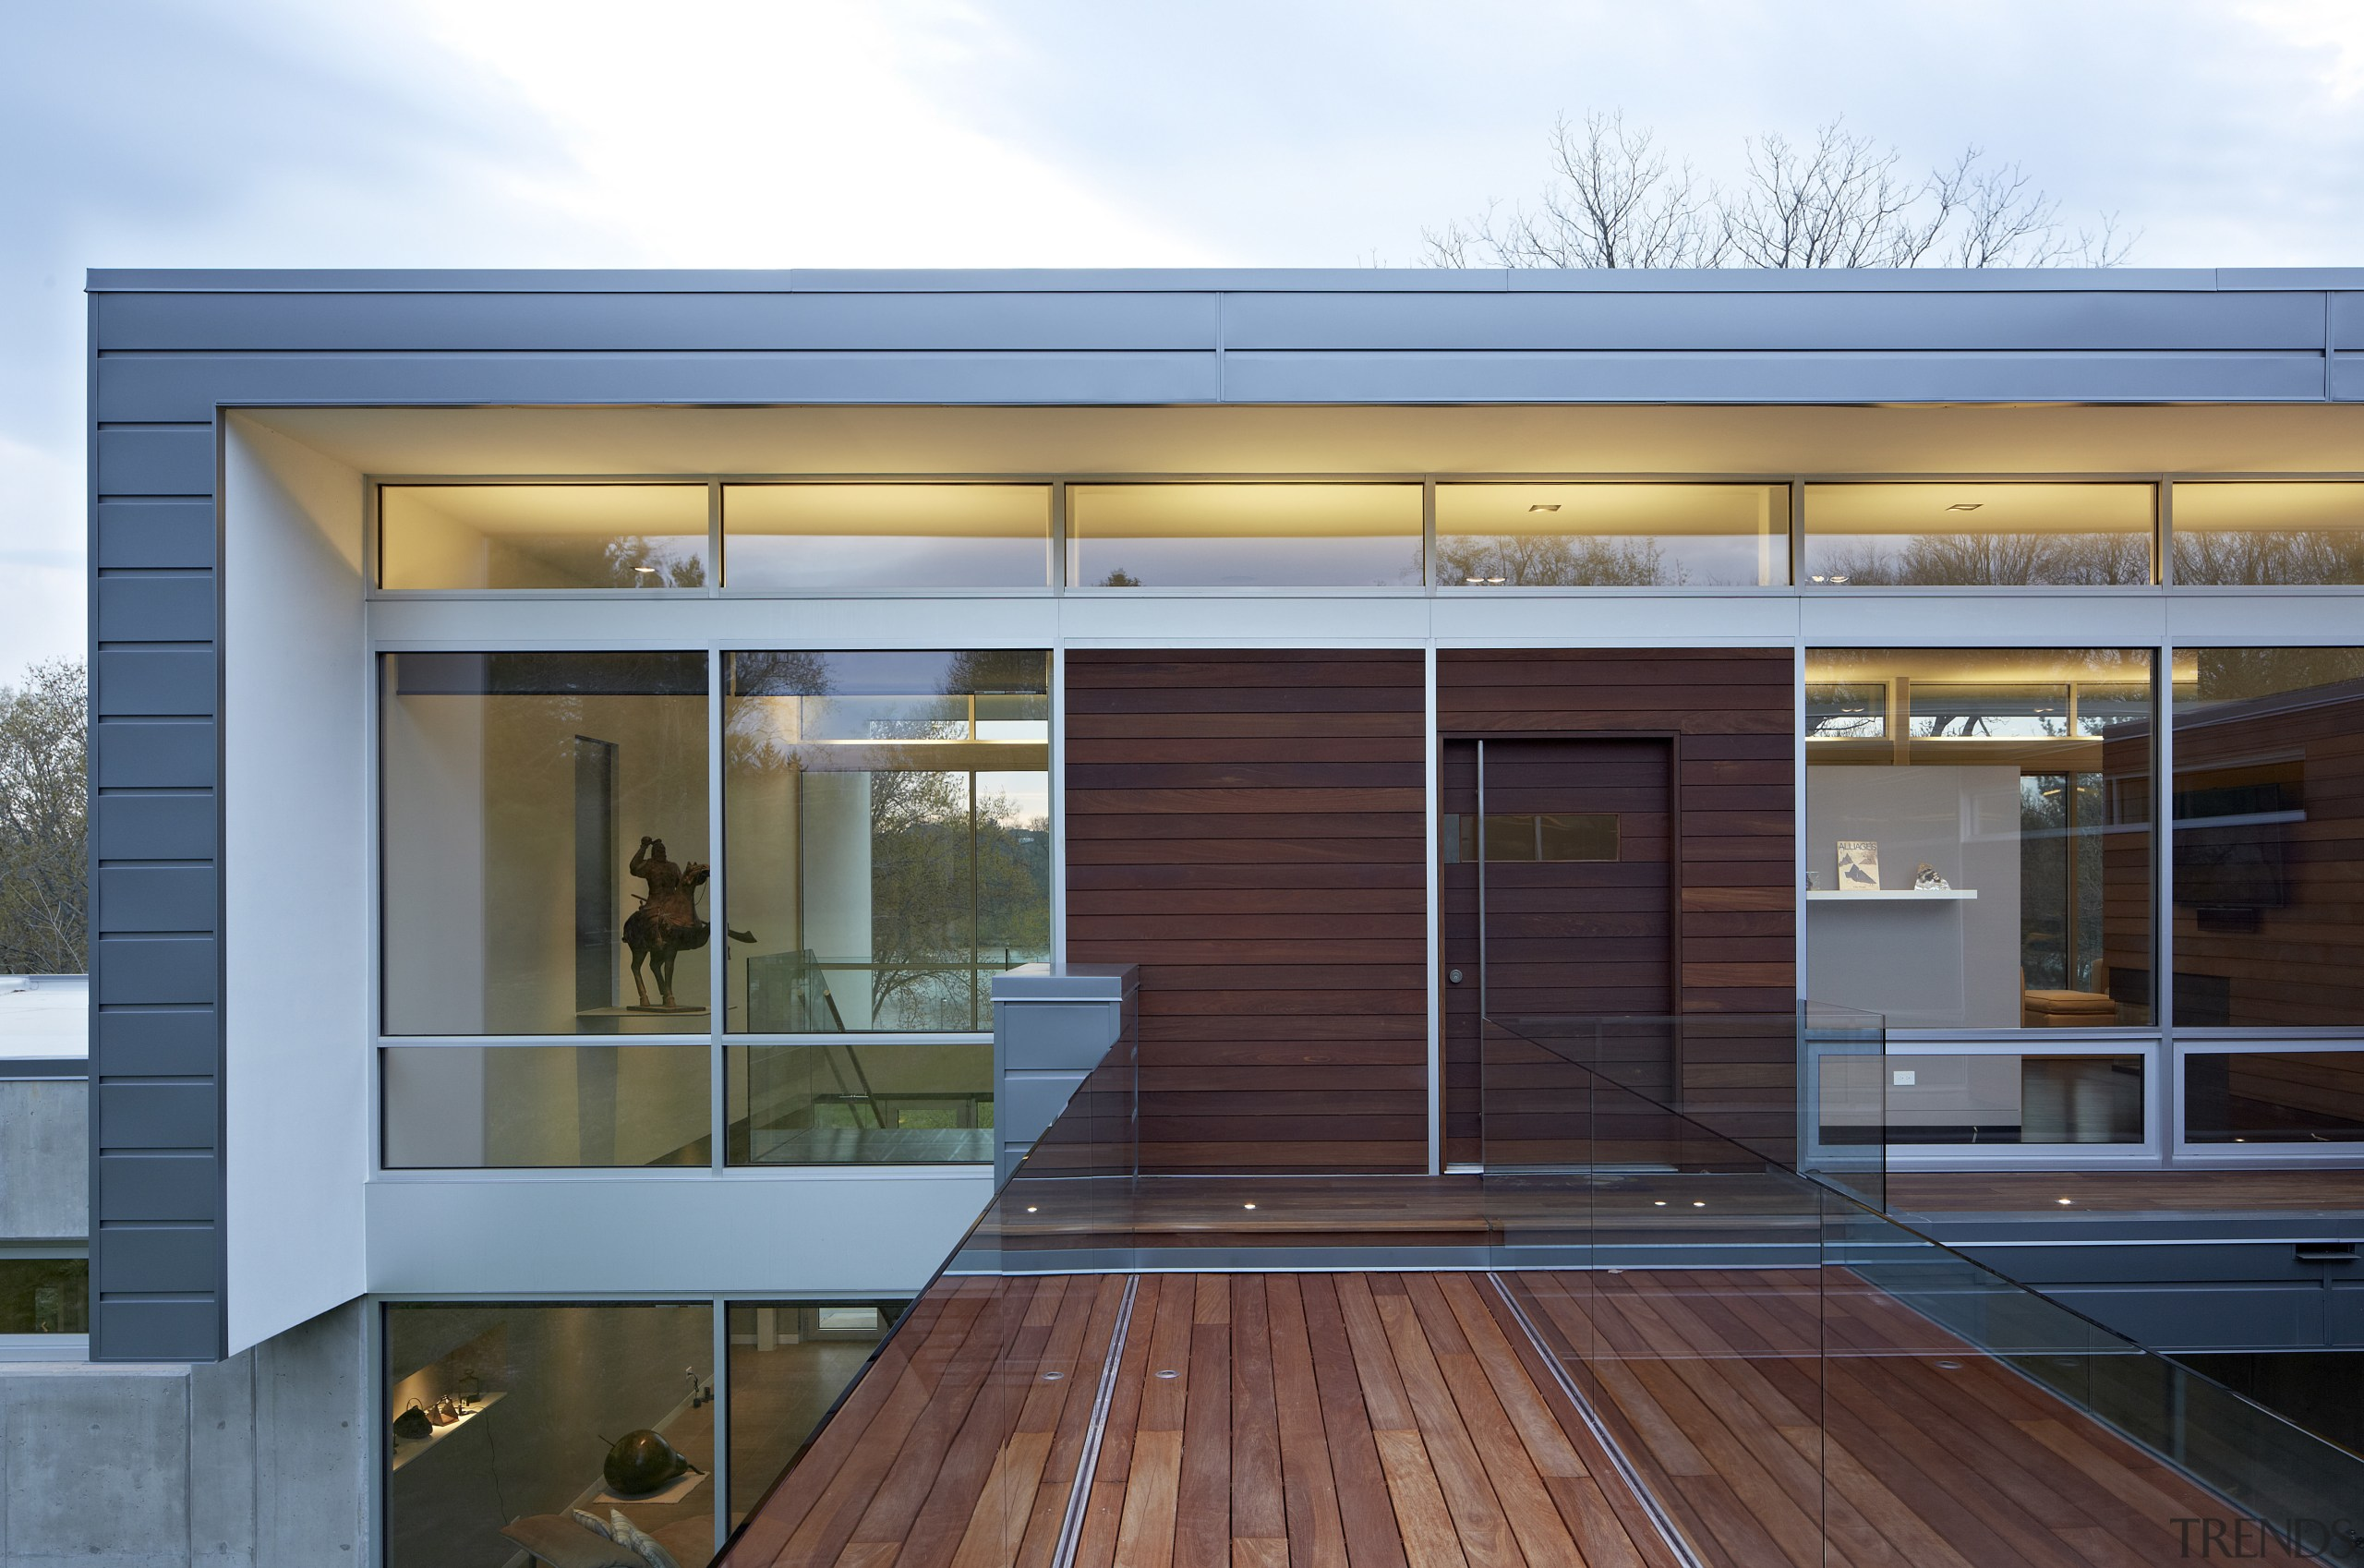 The main entry to this home is via architecture, facade, home, house, real estate, siding, window